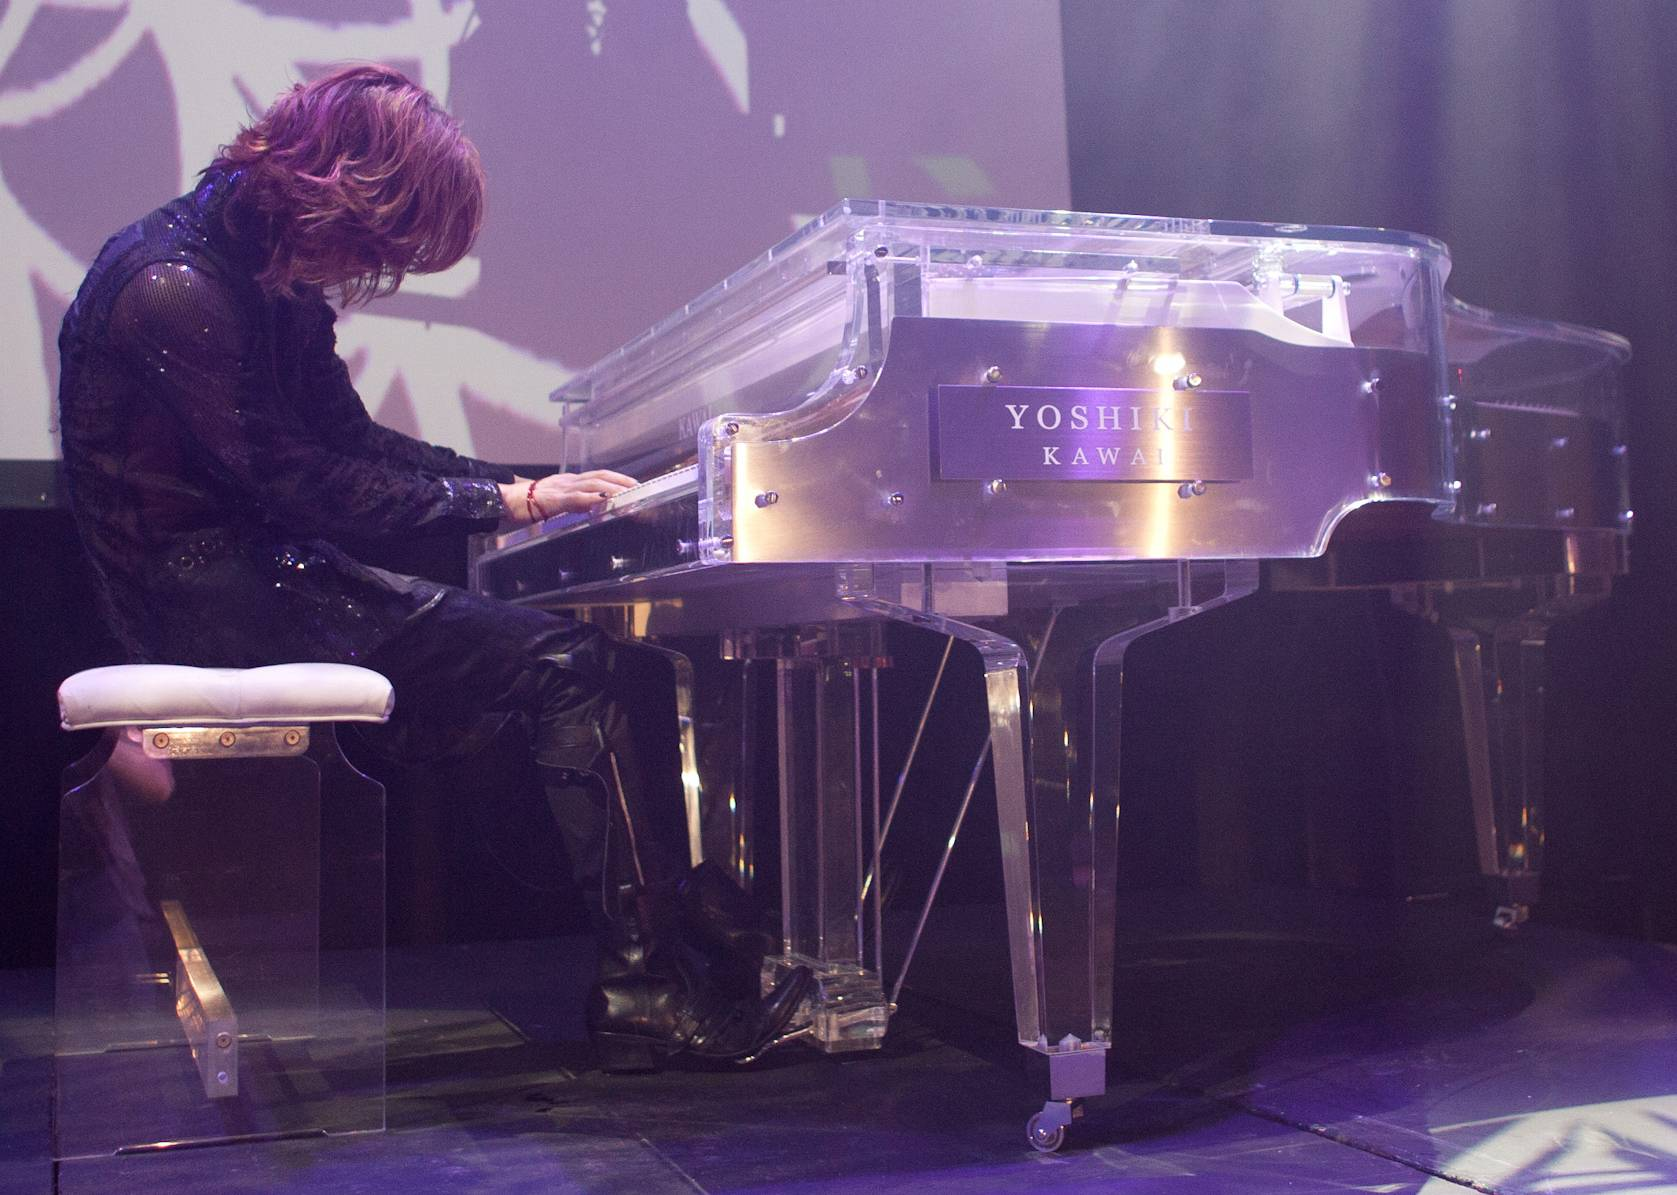 YOSHIKI's crystal piano fetches price of 11 million yen